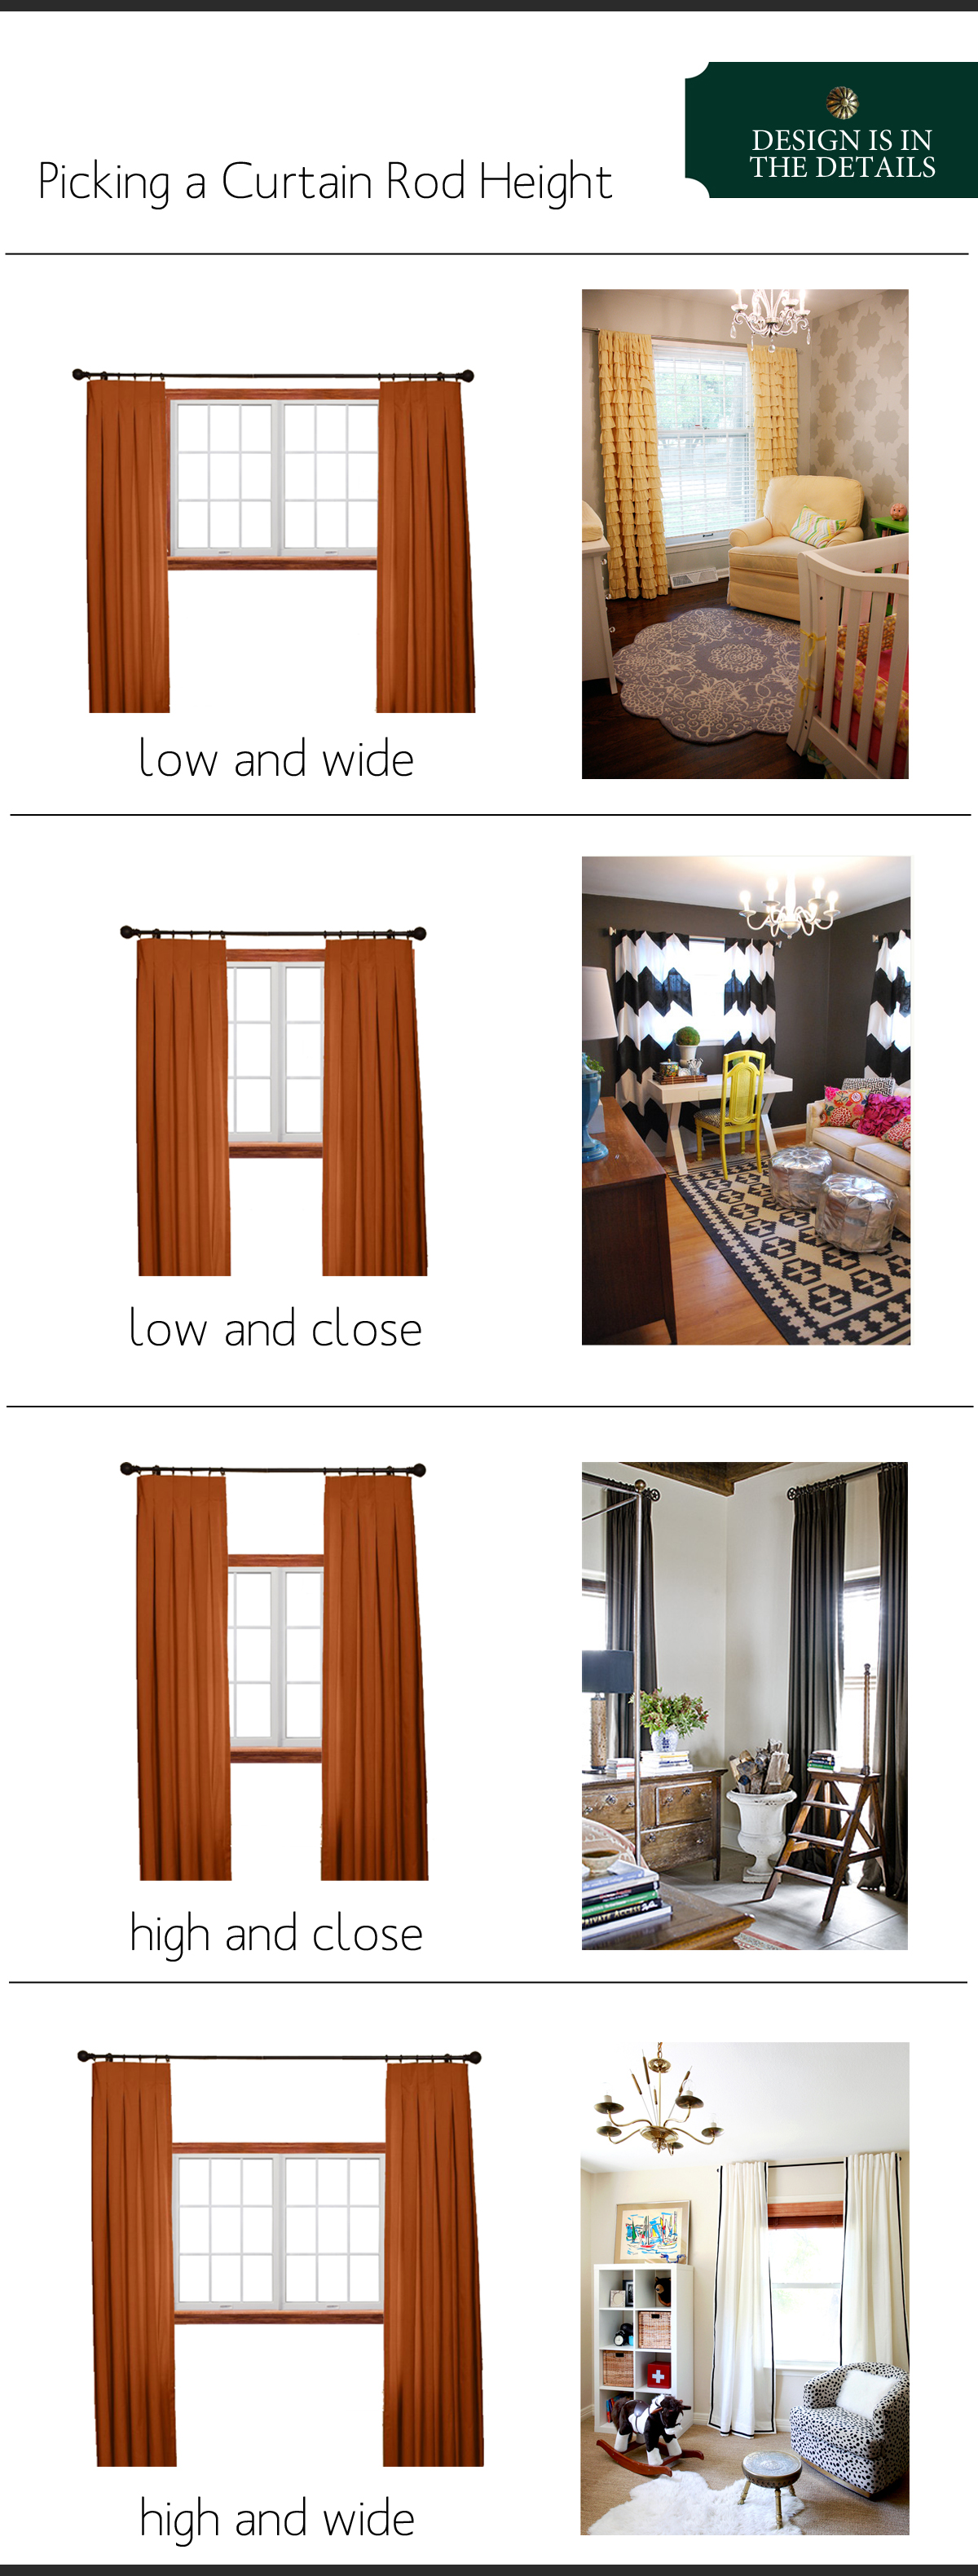 Design Is In The Details Picking A Curtain Rod Height